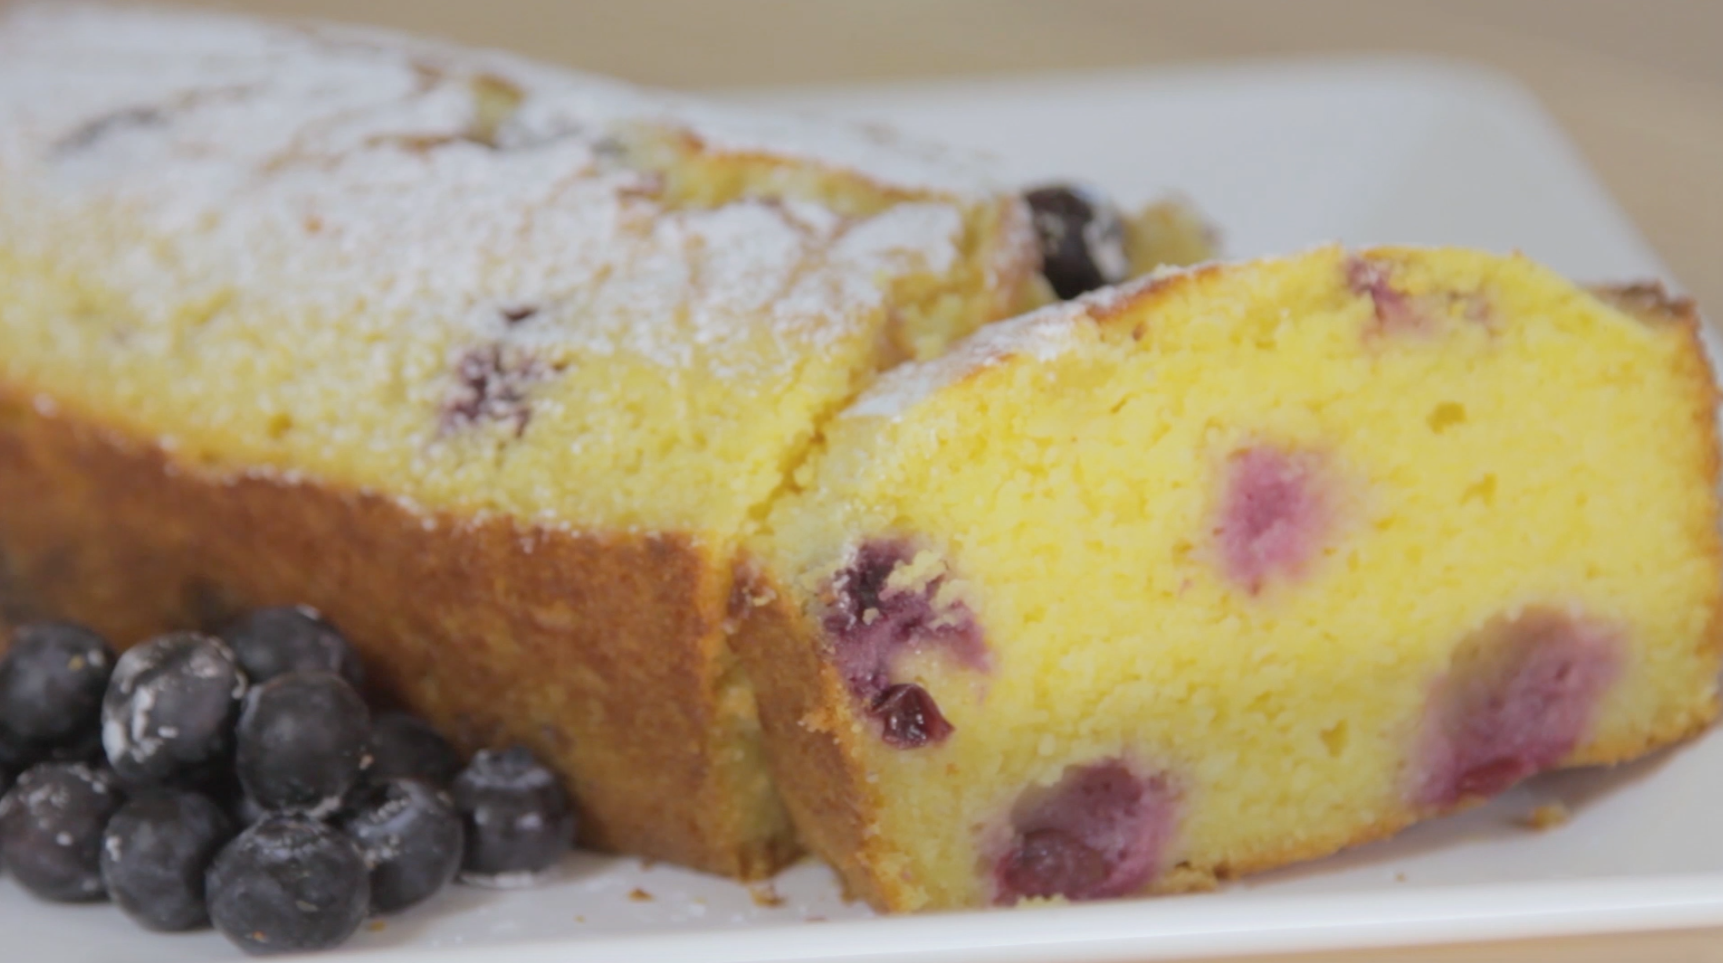 How to Make a Gluten Free Blueberry and Lemon Loaf